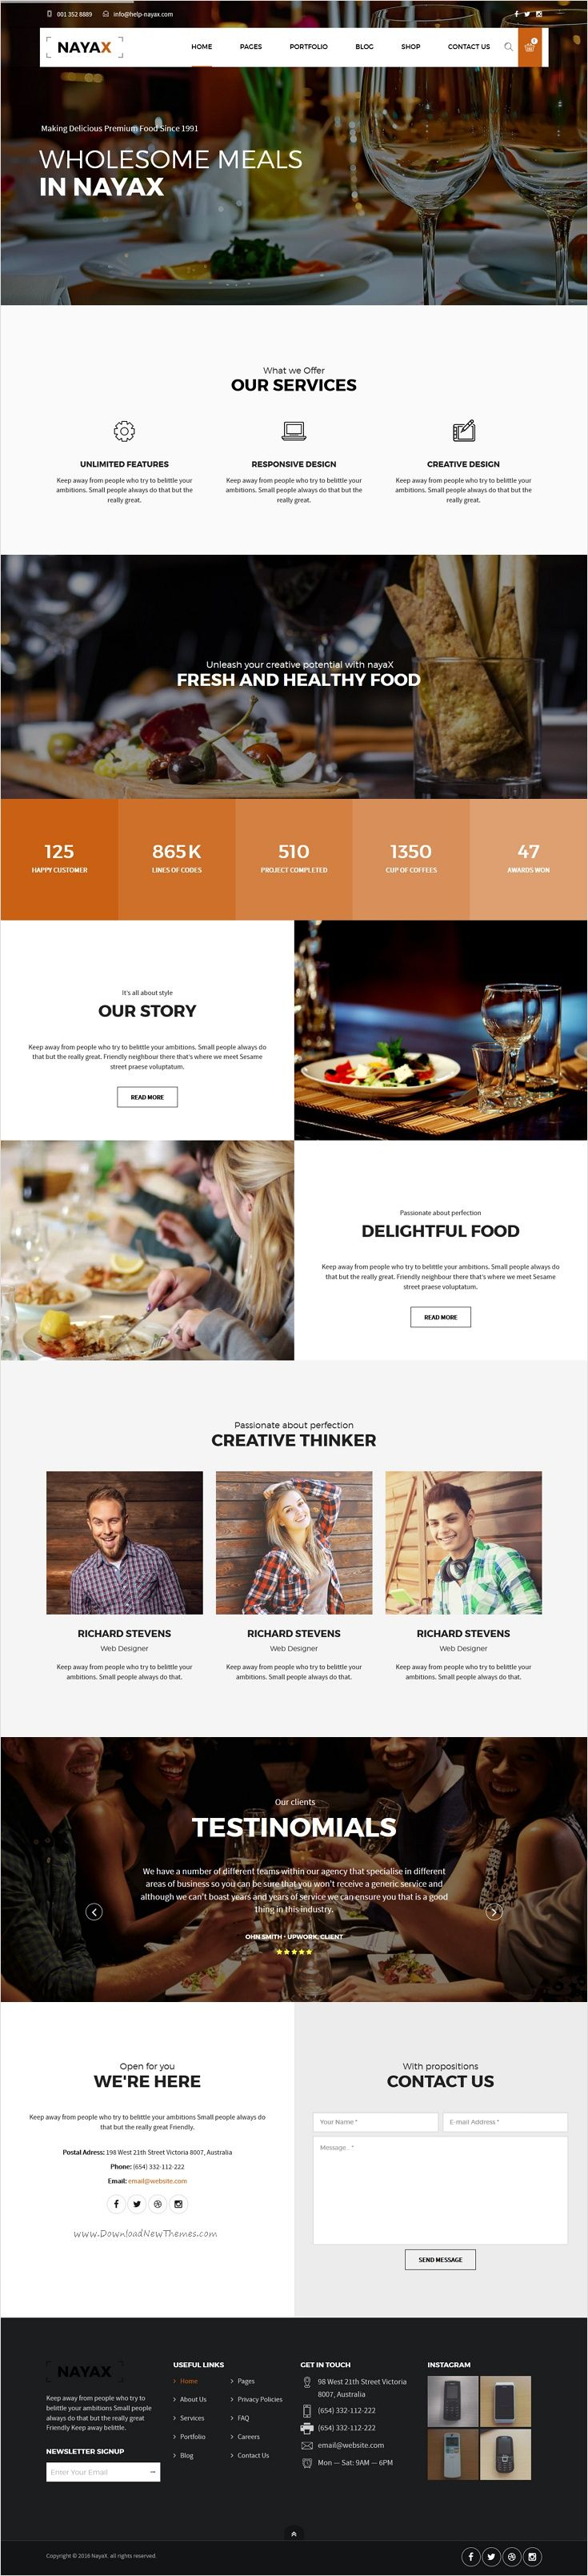 Nayax is beautifully design 12 in 1 responsive #WordPress theme for multipurpose #food #cafe and restaurant website download now➩ https://themeforest.net/item/nayax-creative-modern-multipurpose/16771207?ref=Datasata